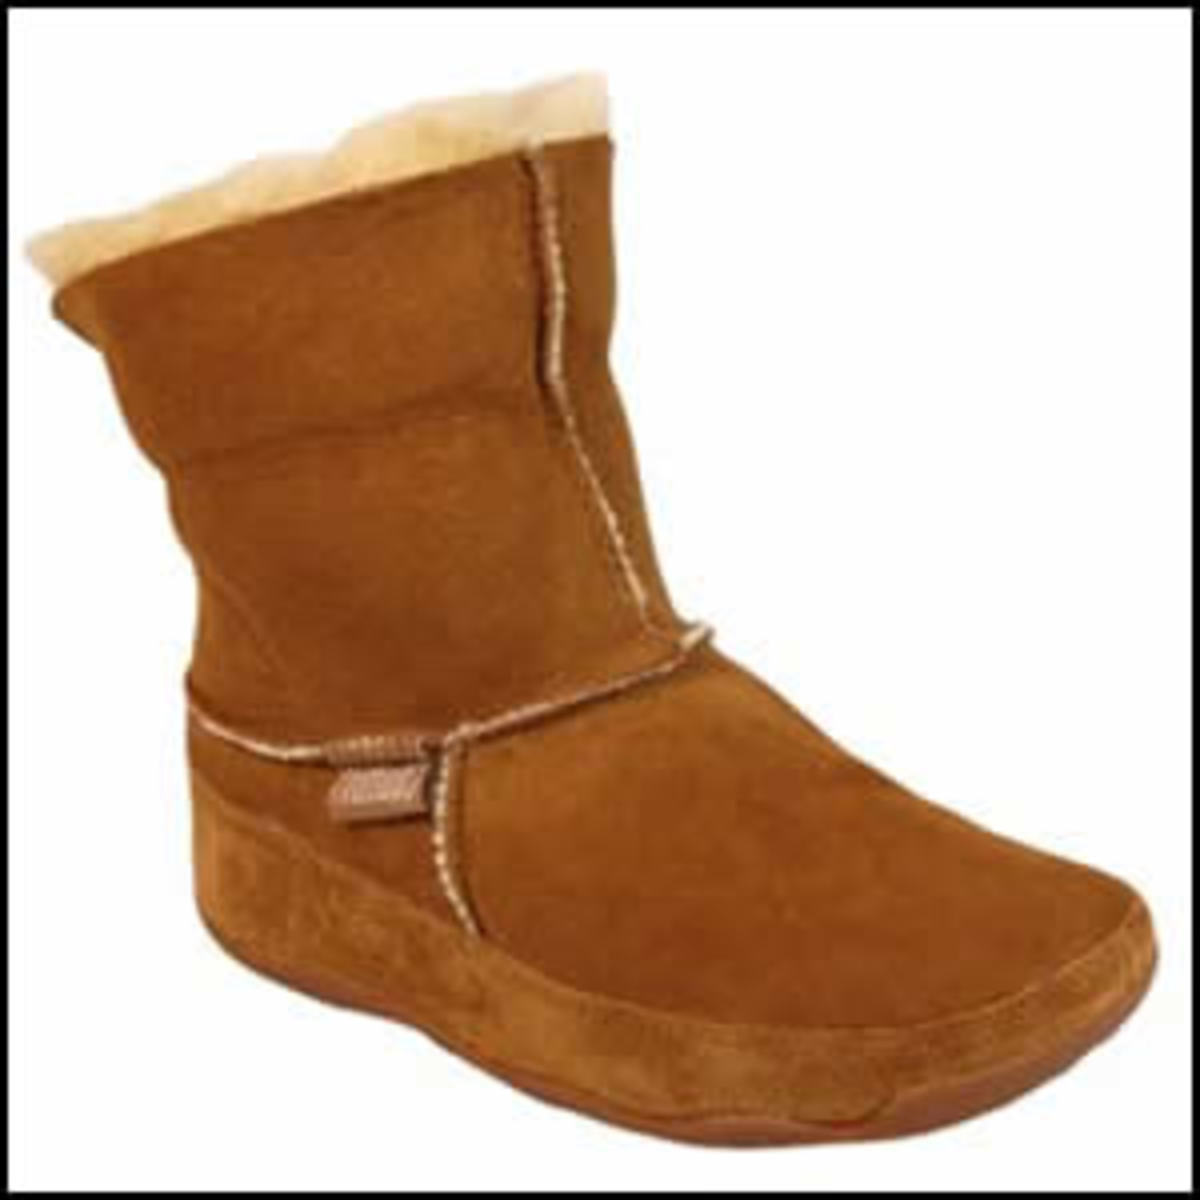 The FitFlop Mukluk - Part Ugg - Part Mukluk - All FitFlop